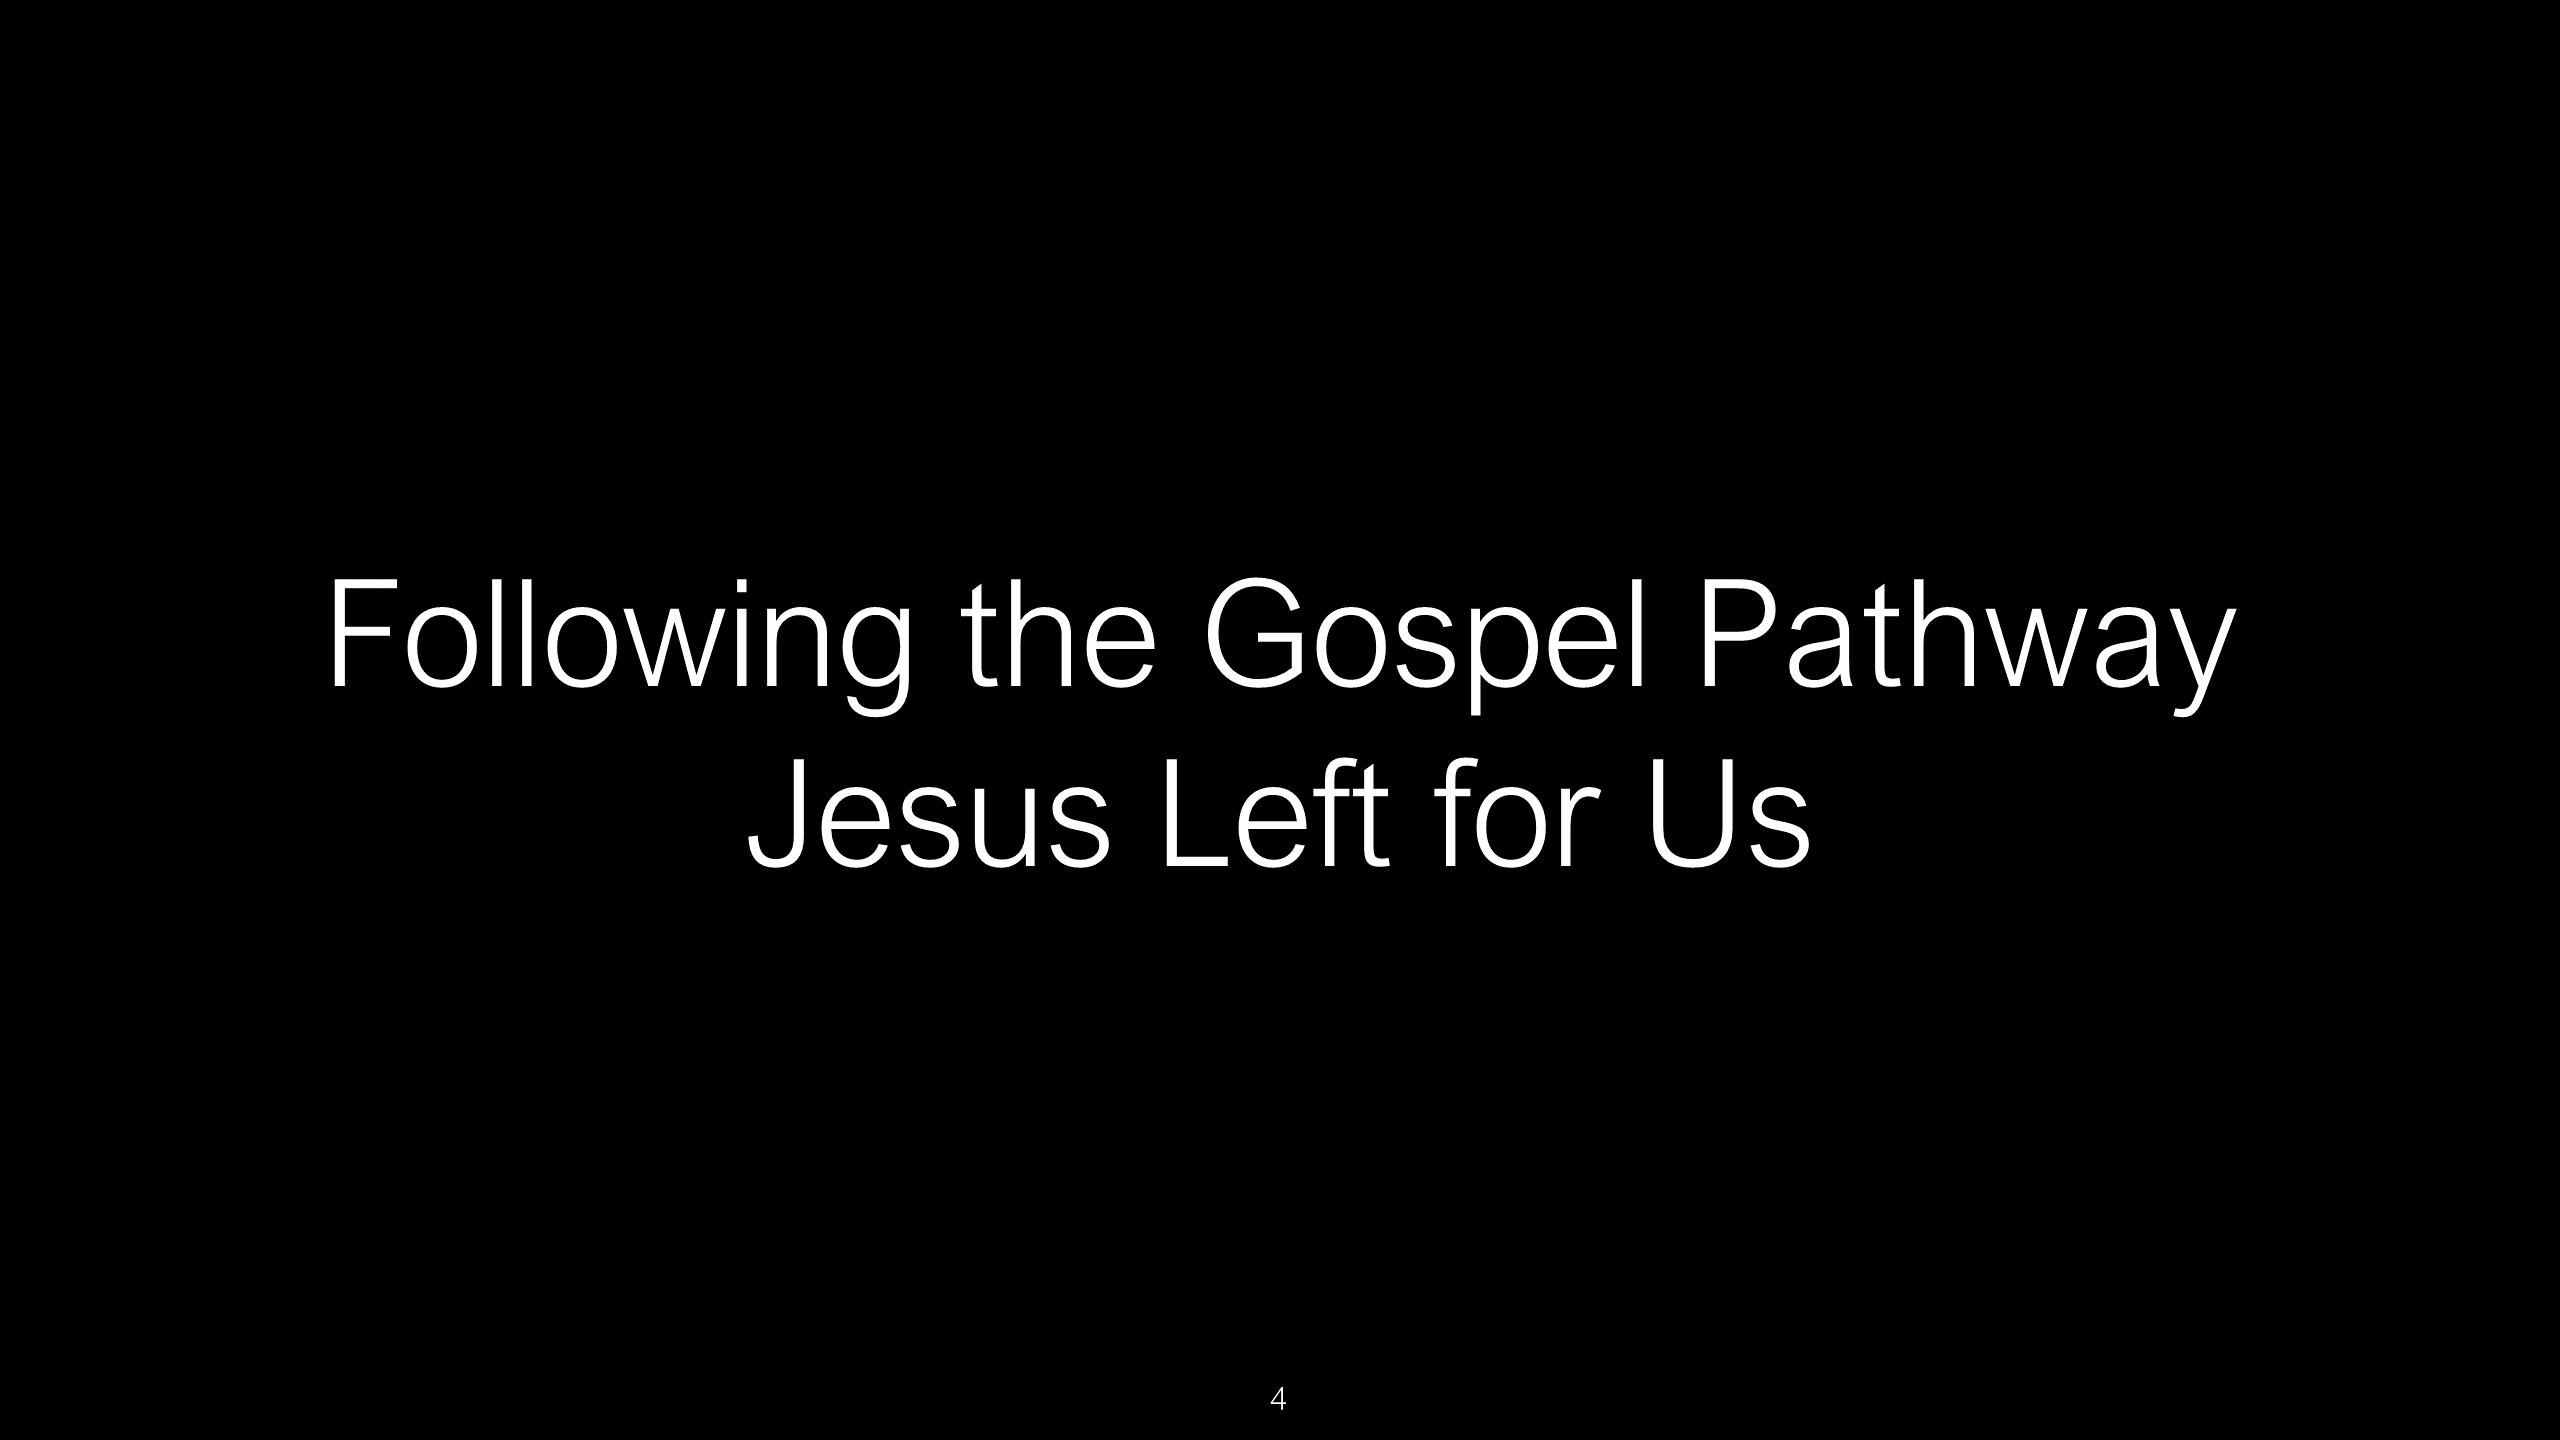 SWS-10 - Following Christ - The Path Jesus Left For Our Safety (4)